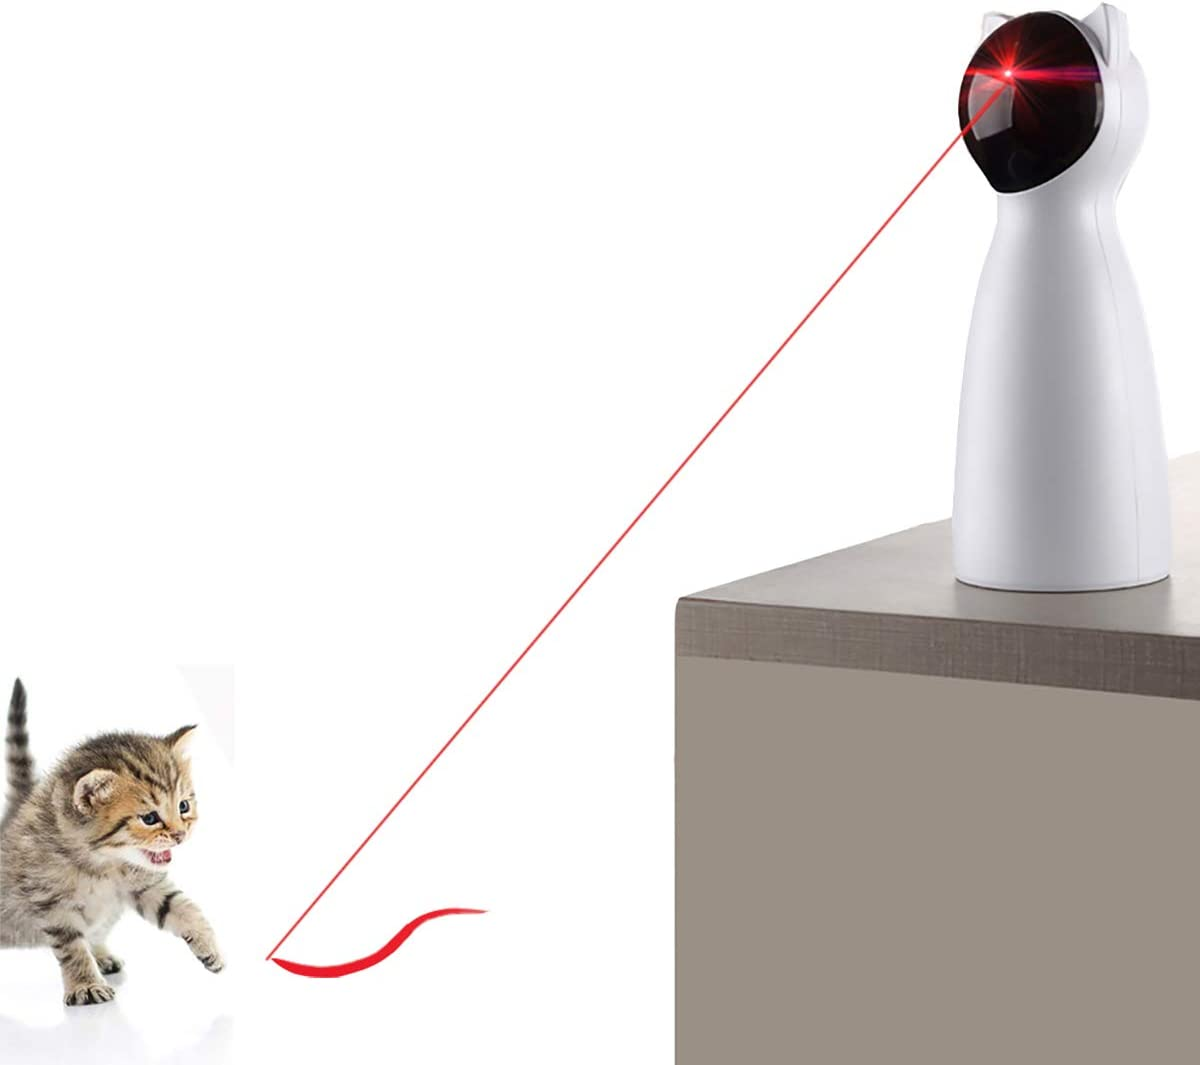 YVE LIFE Cat Laser Toy Automatic,Interactive Toy for Kitten/Dogs - USB Charging,Placing High,5 Random Pattern,Automatic On/Off and Silent (P01)